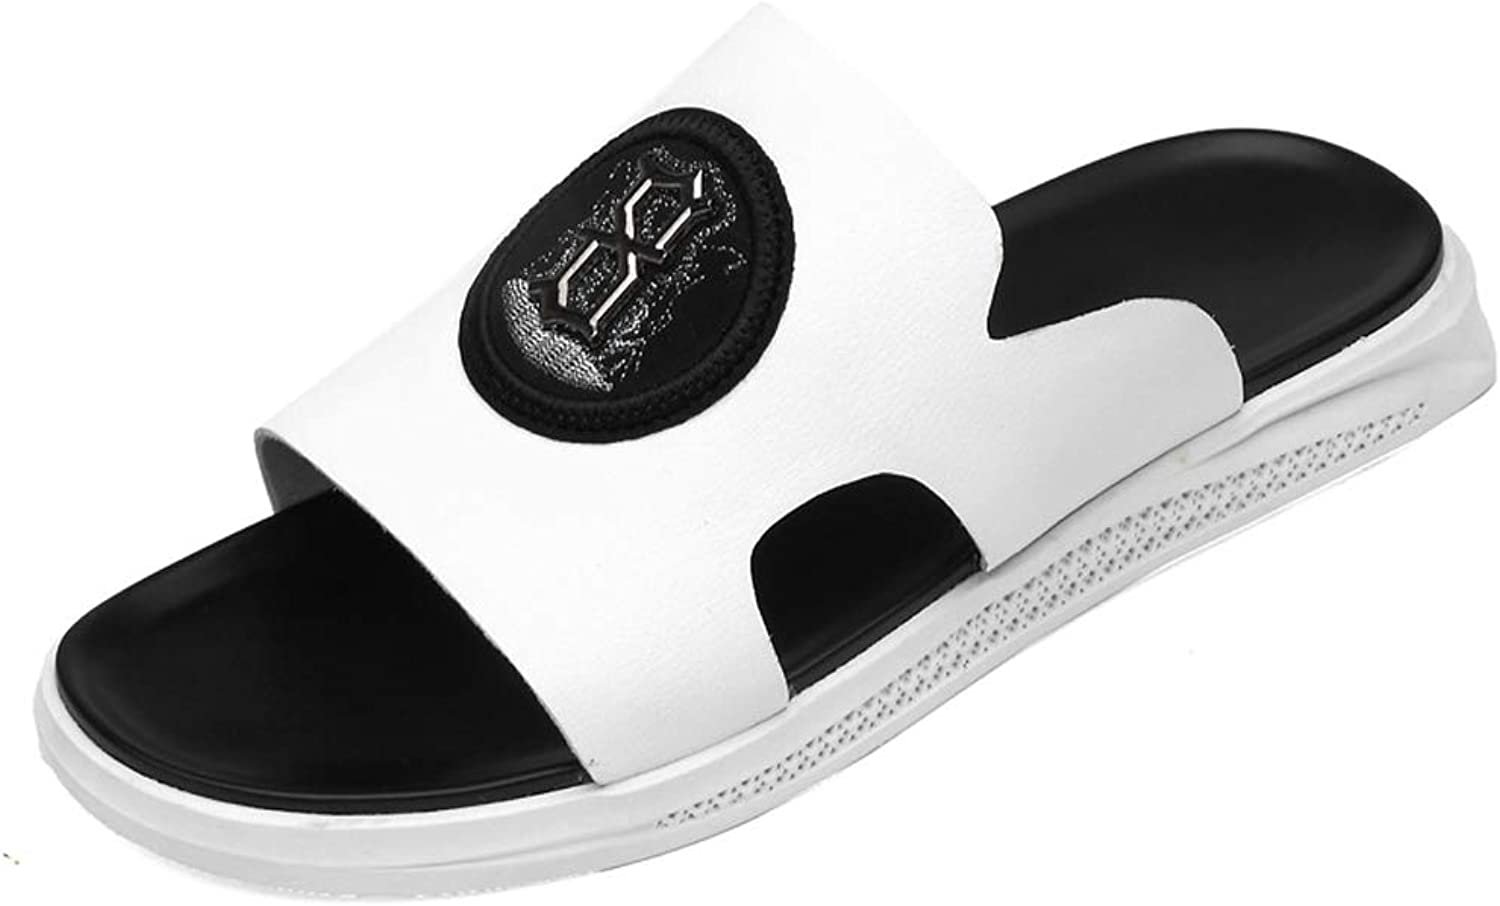 TYX-SS Summer Men'S Casual Slippers Personality Sandals Breathable Non-Slip Slippers